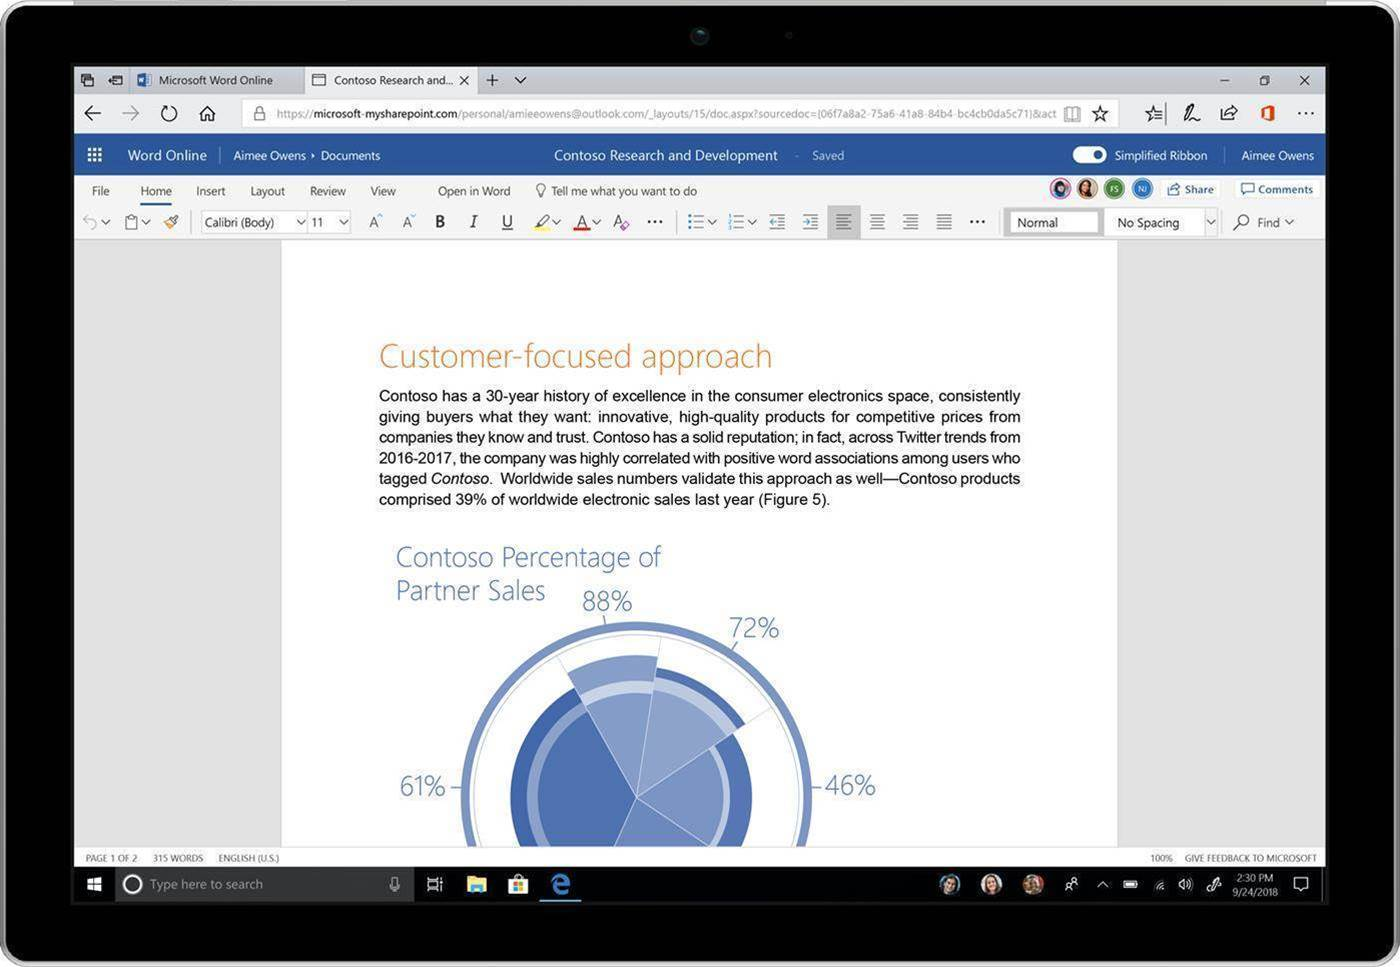 Microsoft revamps Office 365 with new look, ribbon and AI search